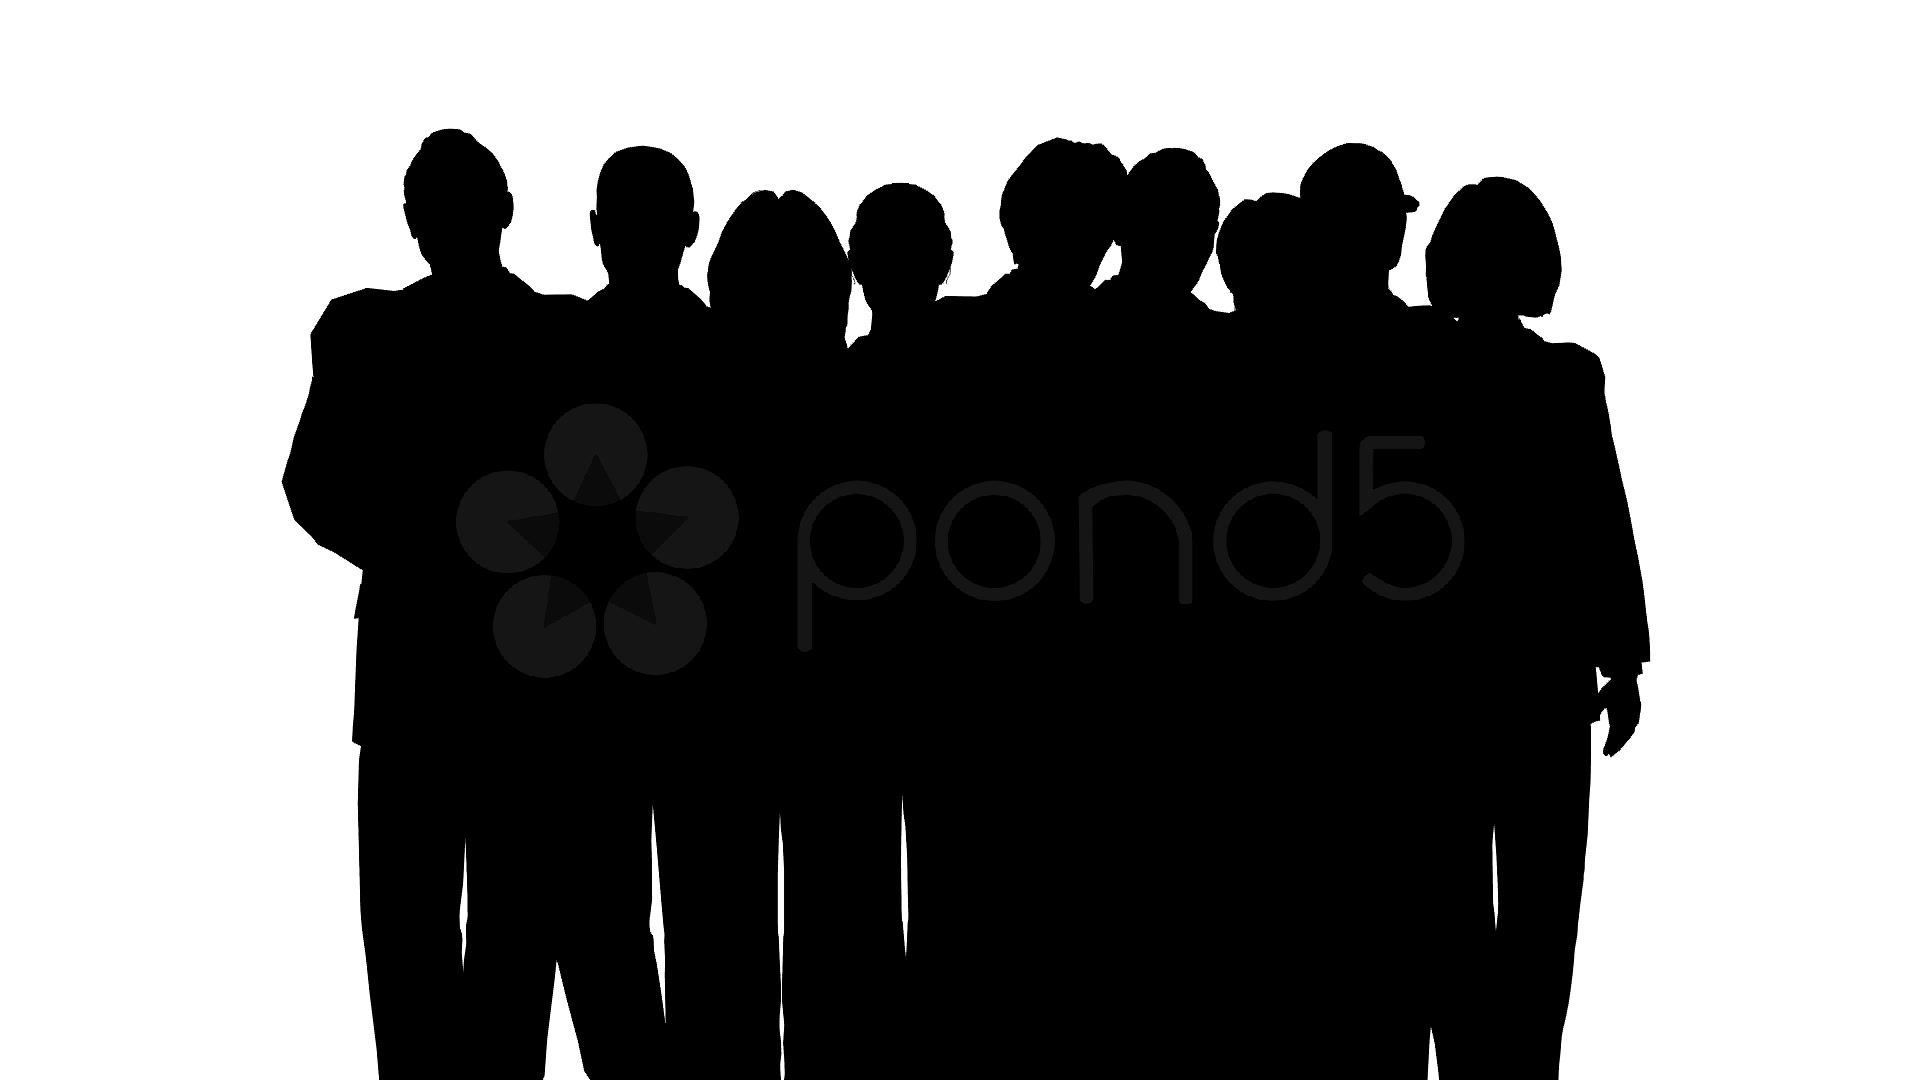 Standing crowd silhouette - photo#13